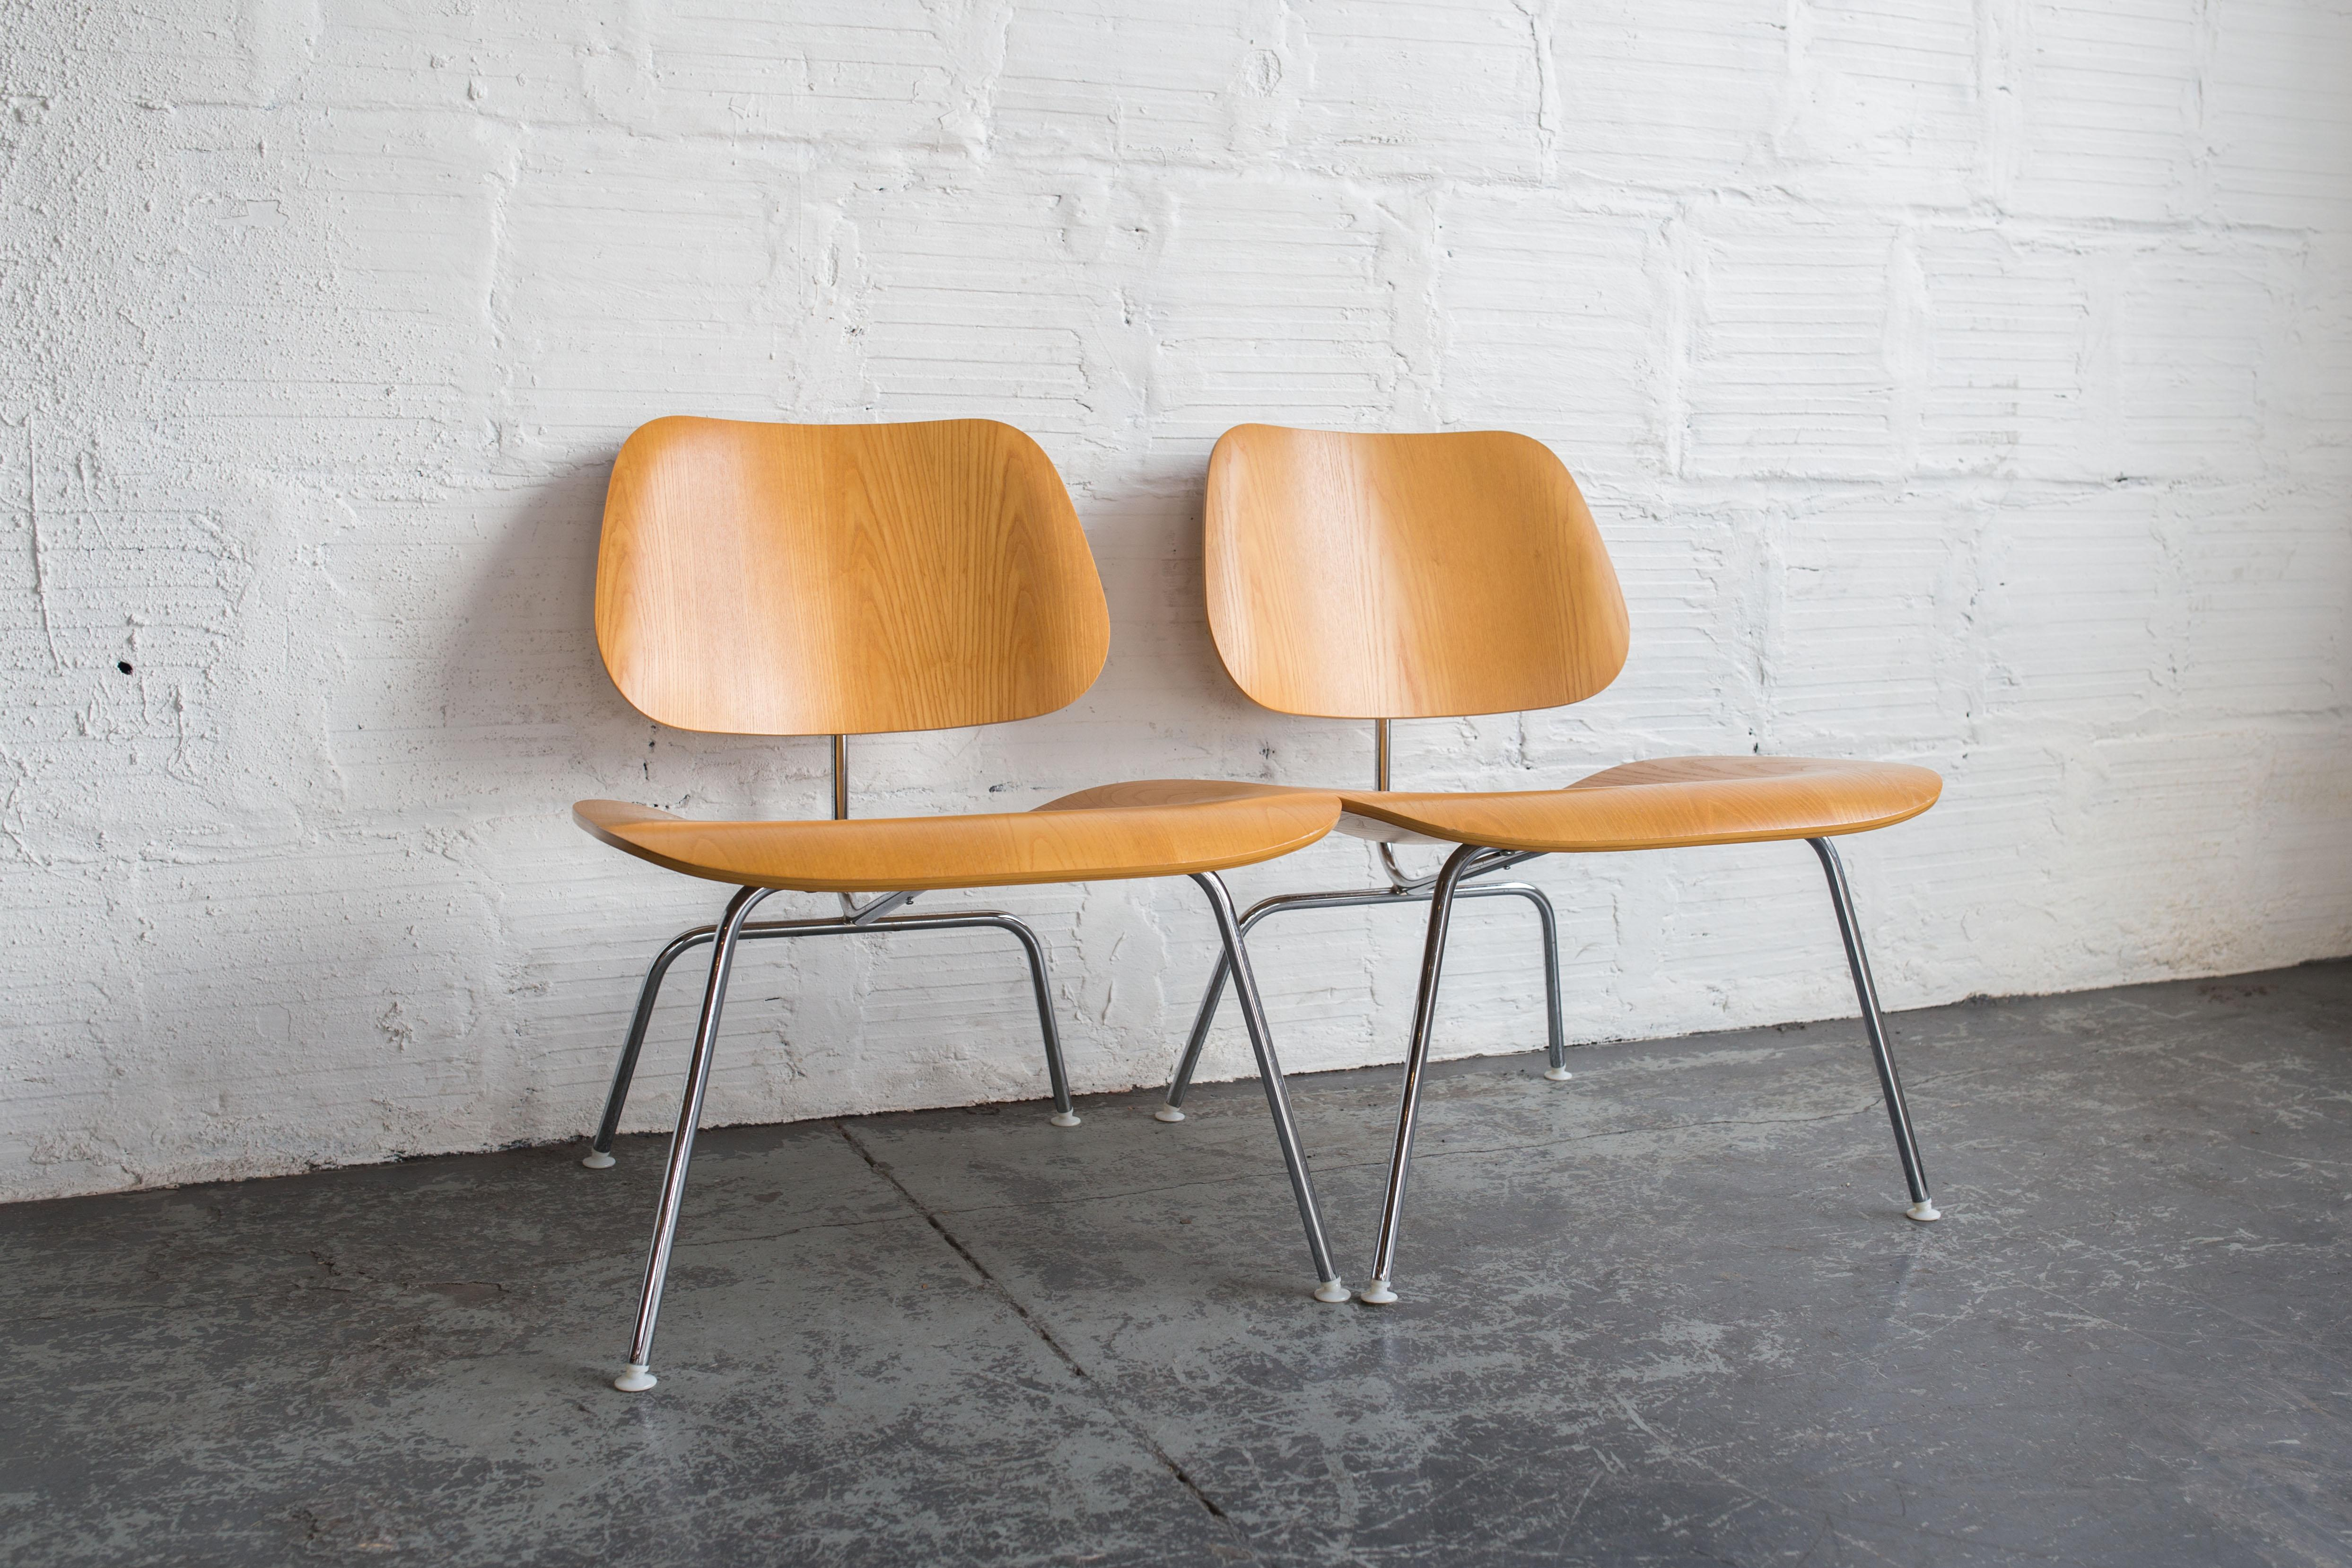 Eames Molded Plywood LCM Chair